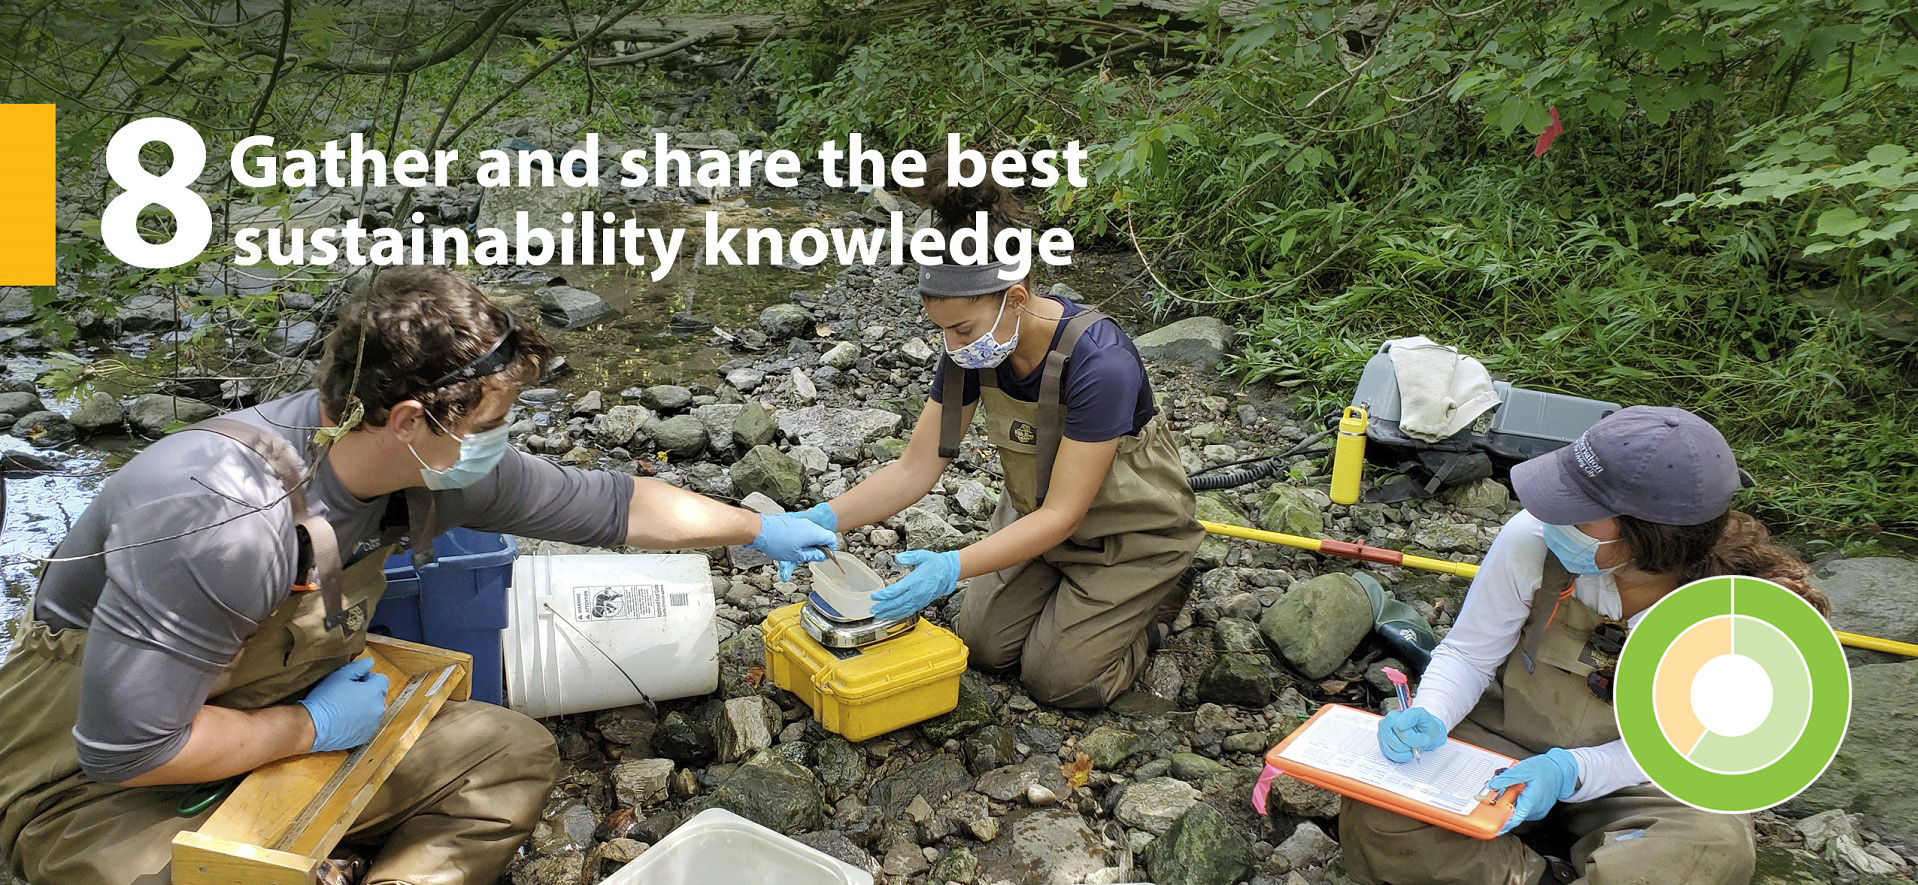 TRCA strategic goal 8 - Gather and share the best sustainability knowledge